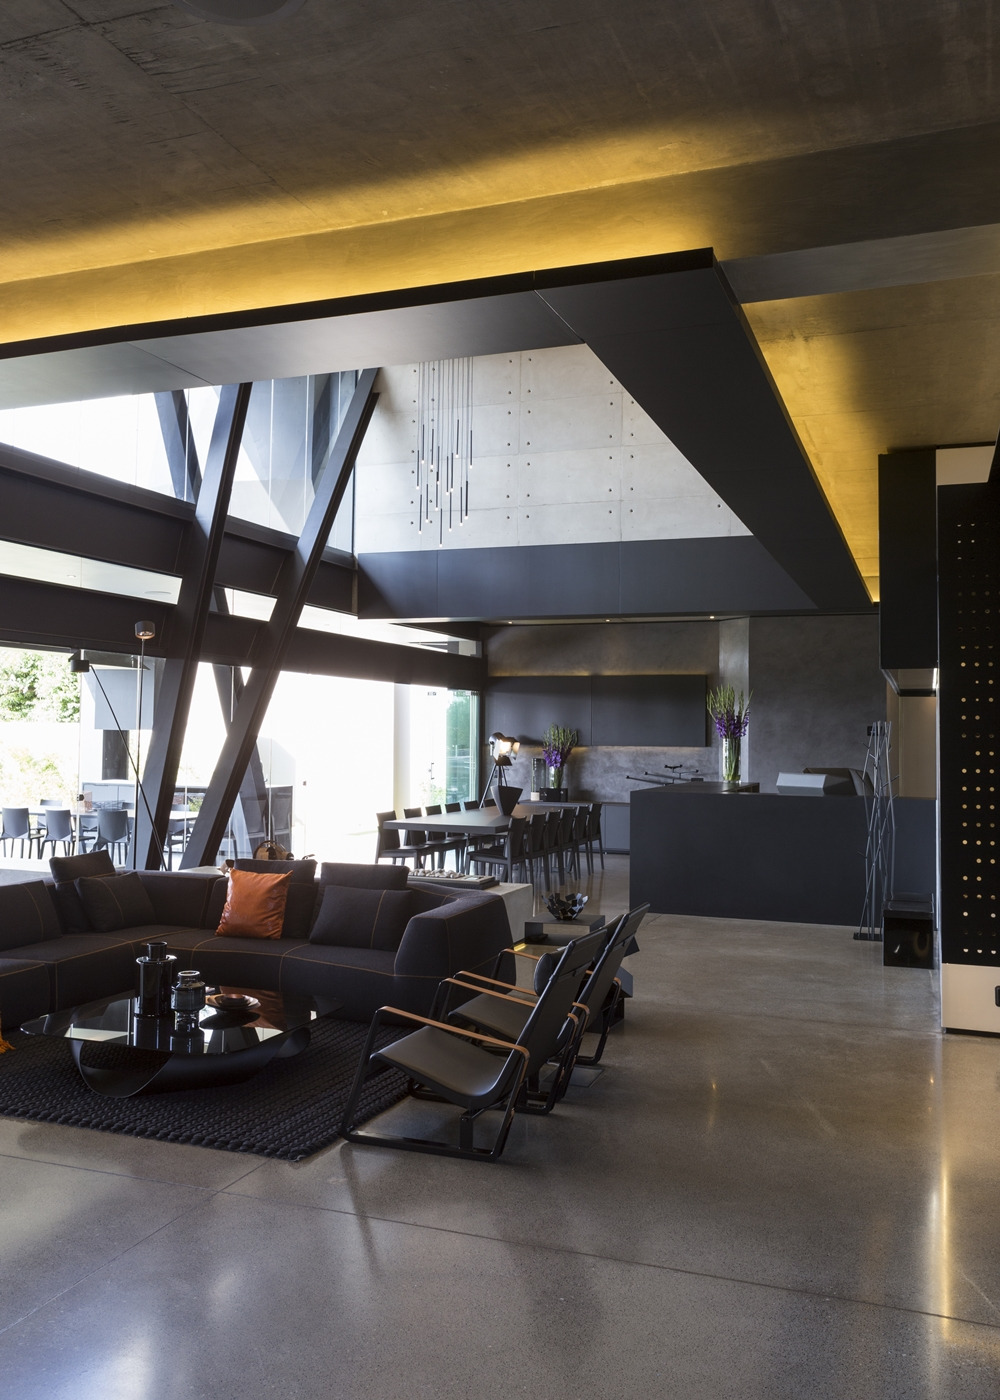 Best Houses in the World Amazing Kloof Road House featured on architecture beast 01 11